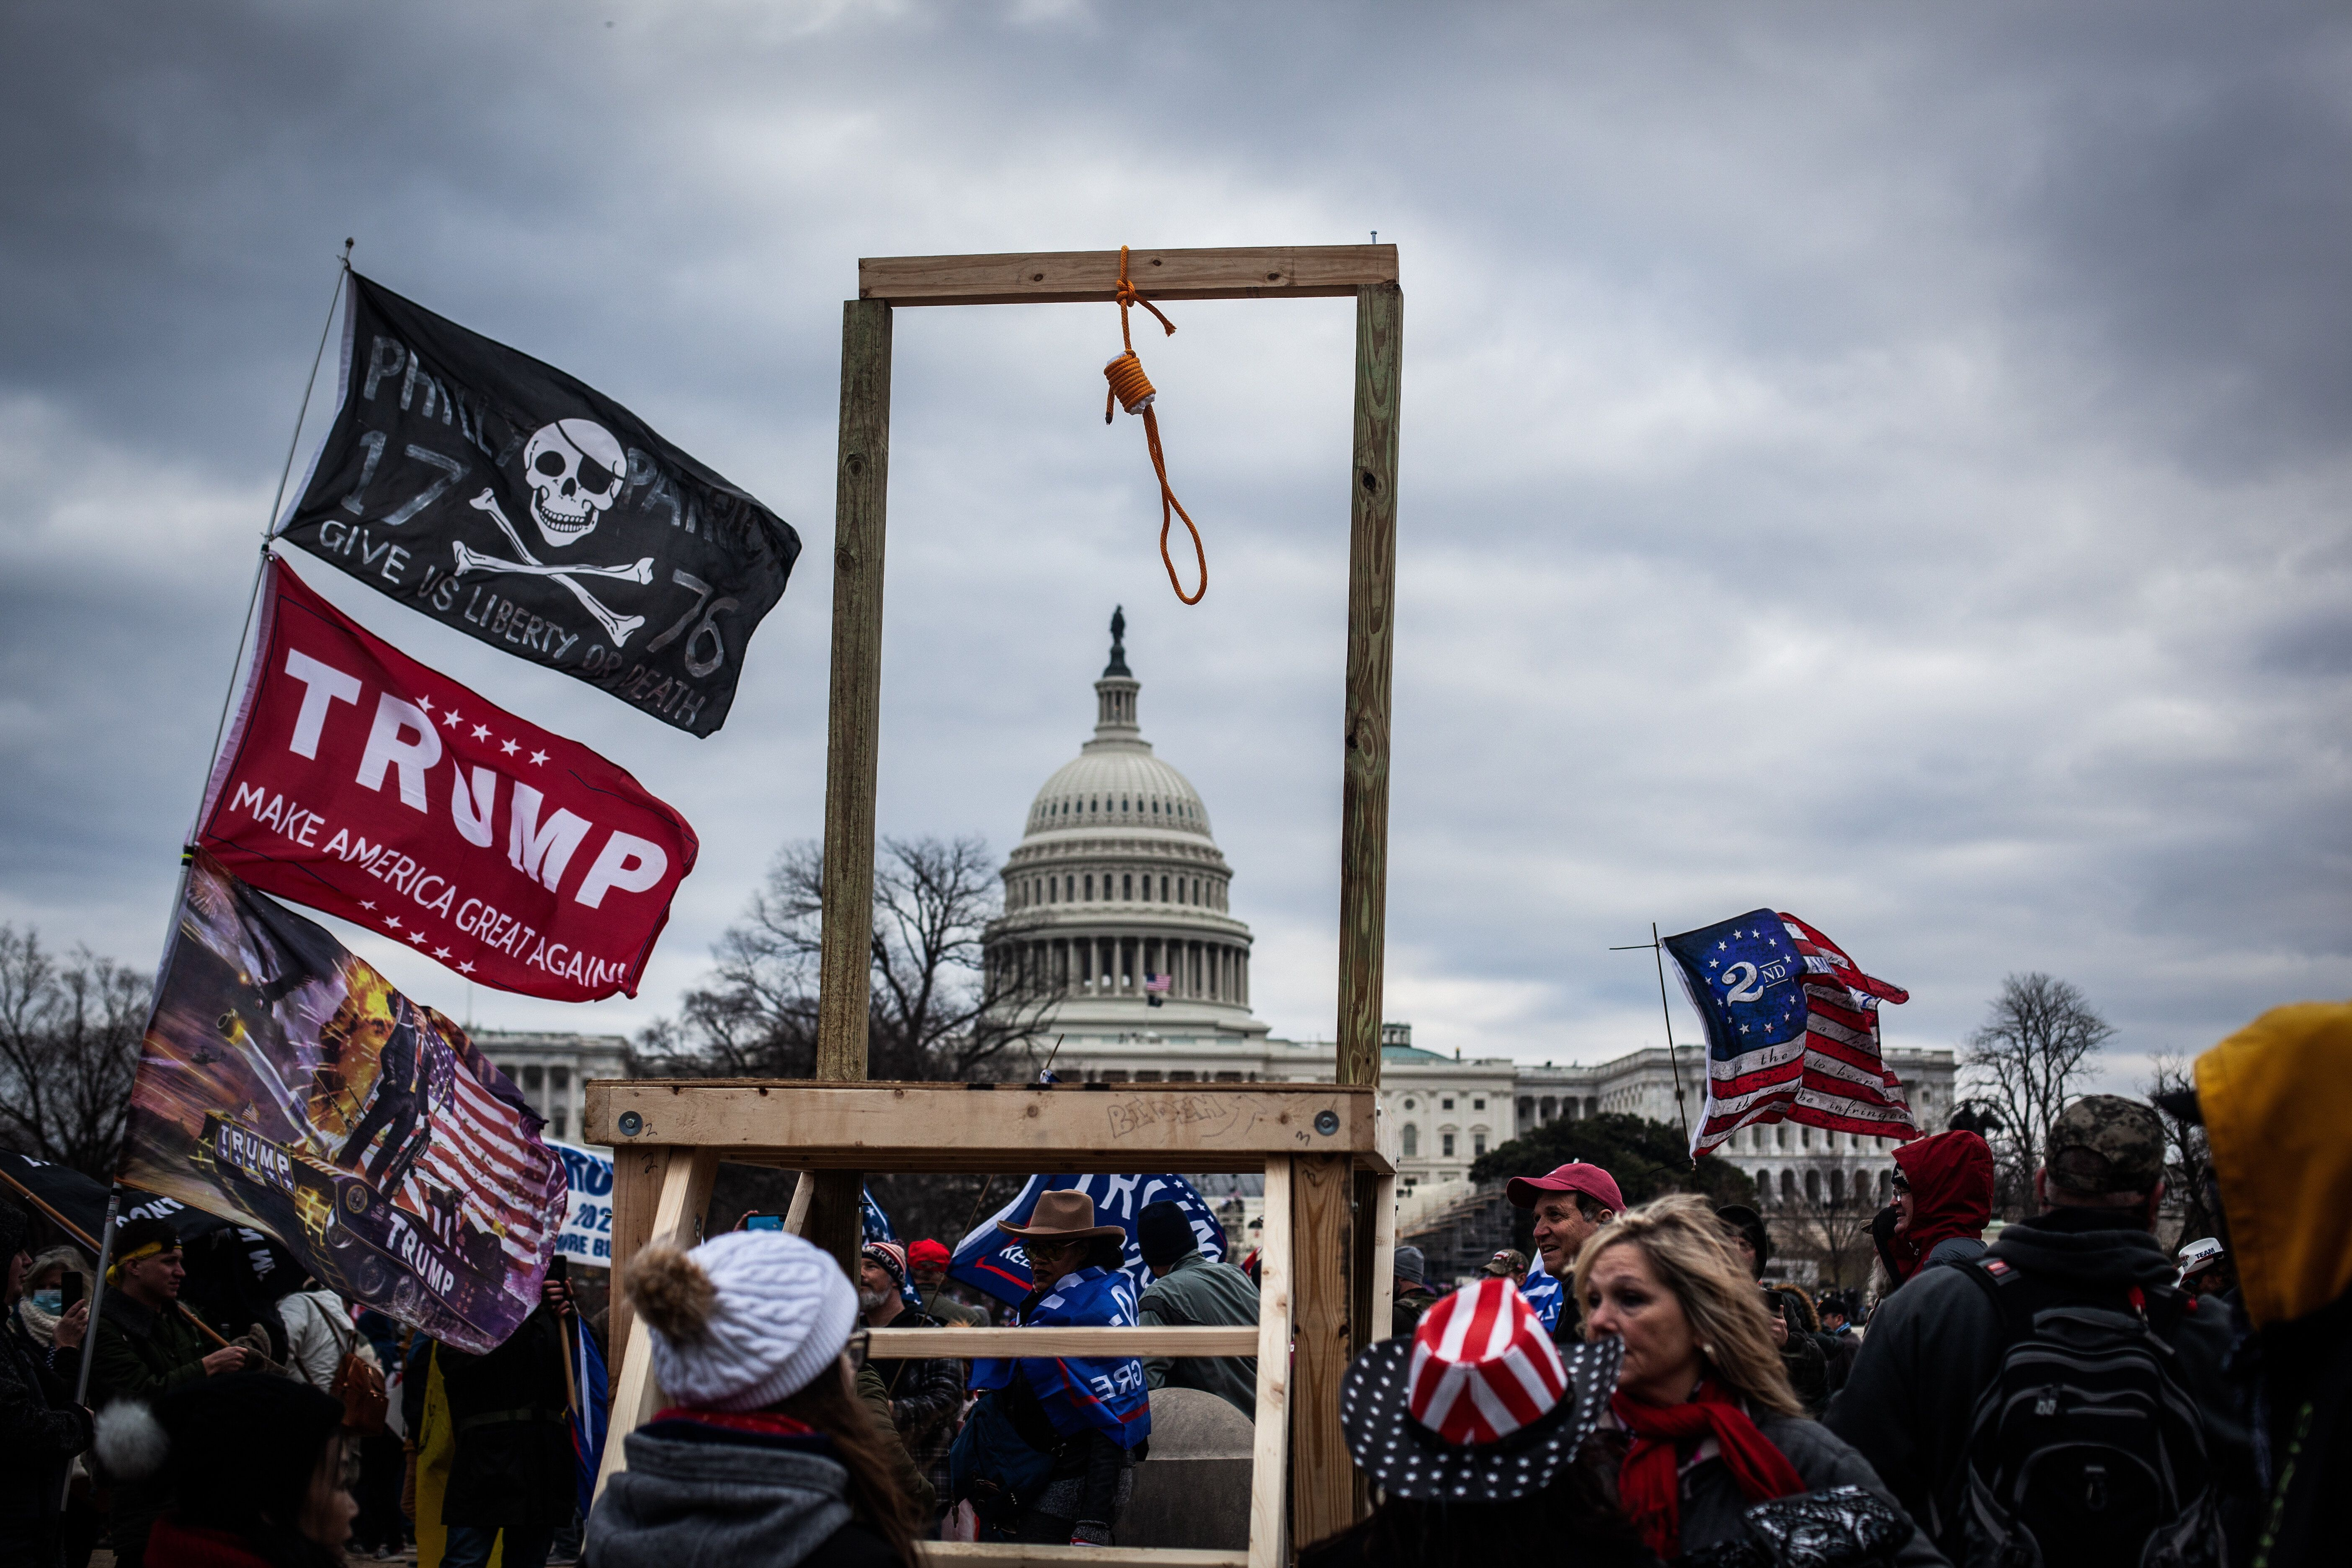 Trump supporters near the U.S. Capitol on Jan. 6, 2021, in Washington, D.C. The protesters stormed the historic building, bre